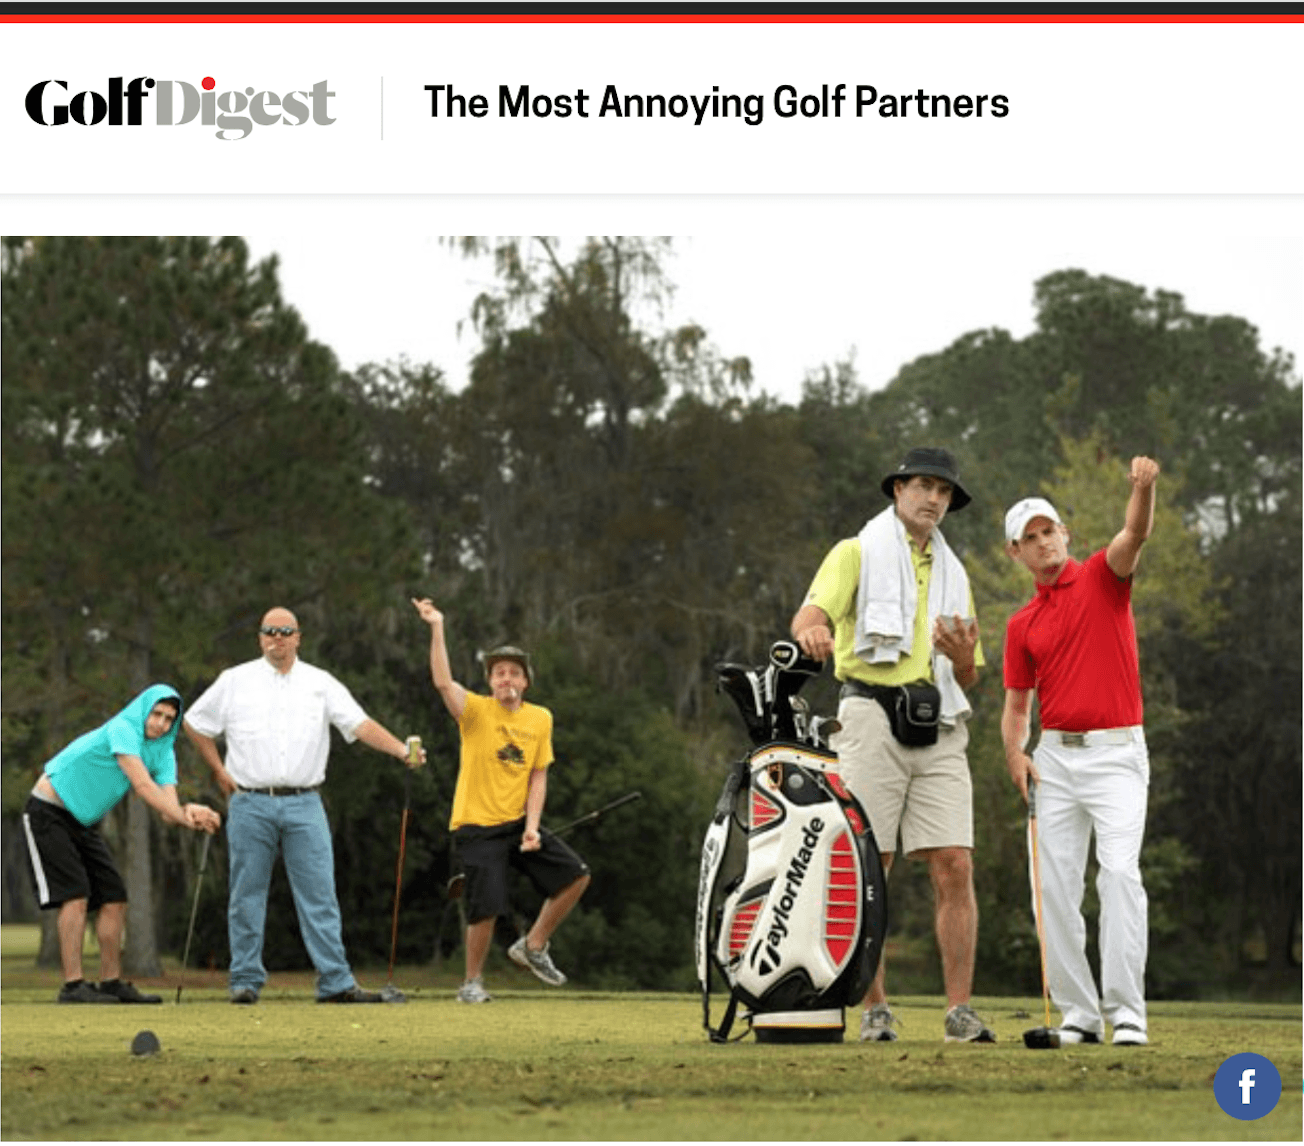 golf digest annoying snob